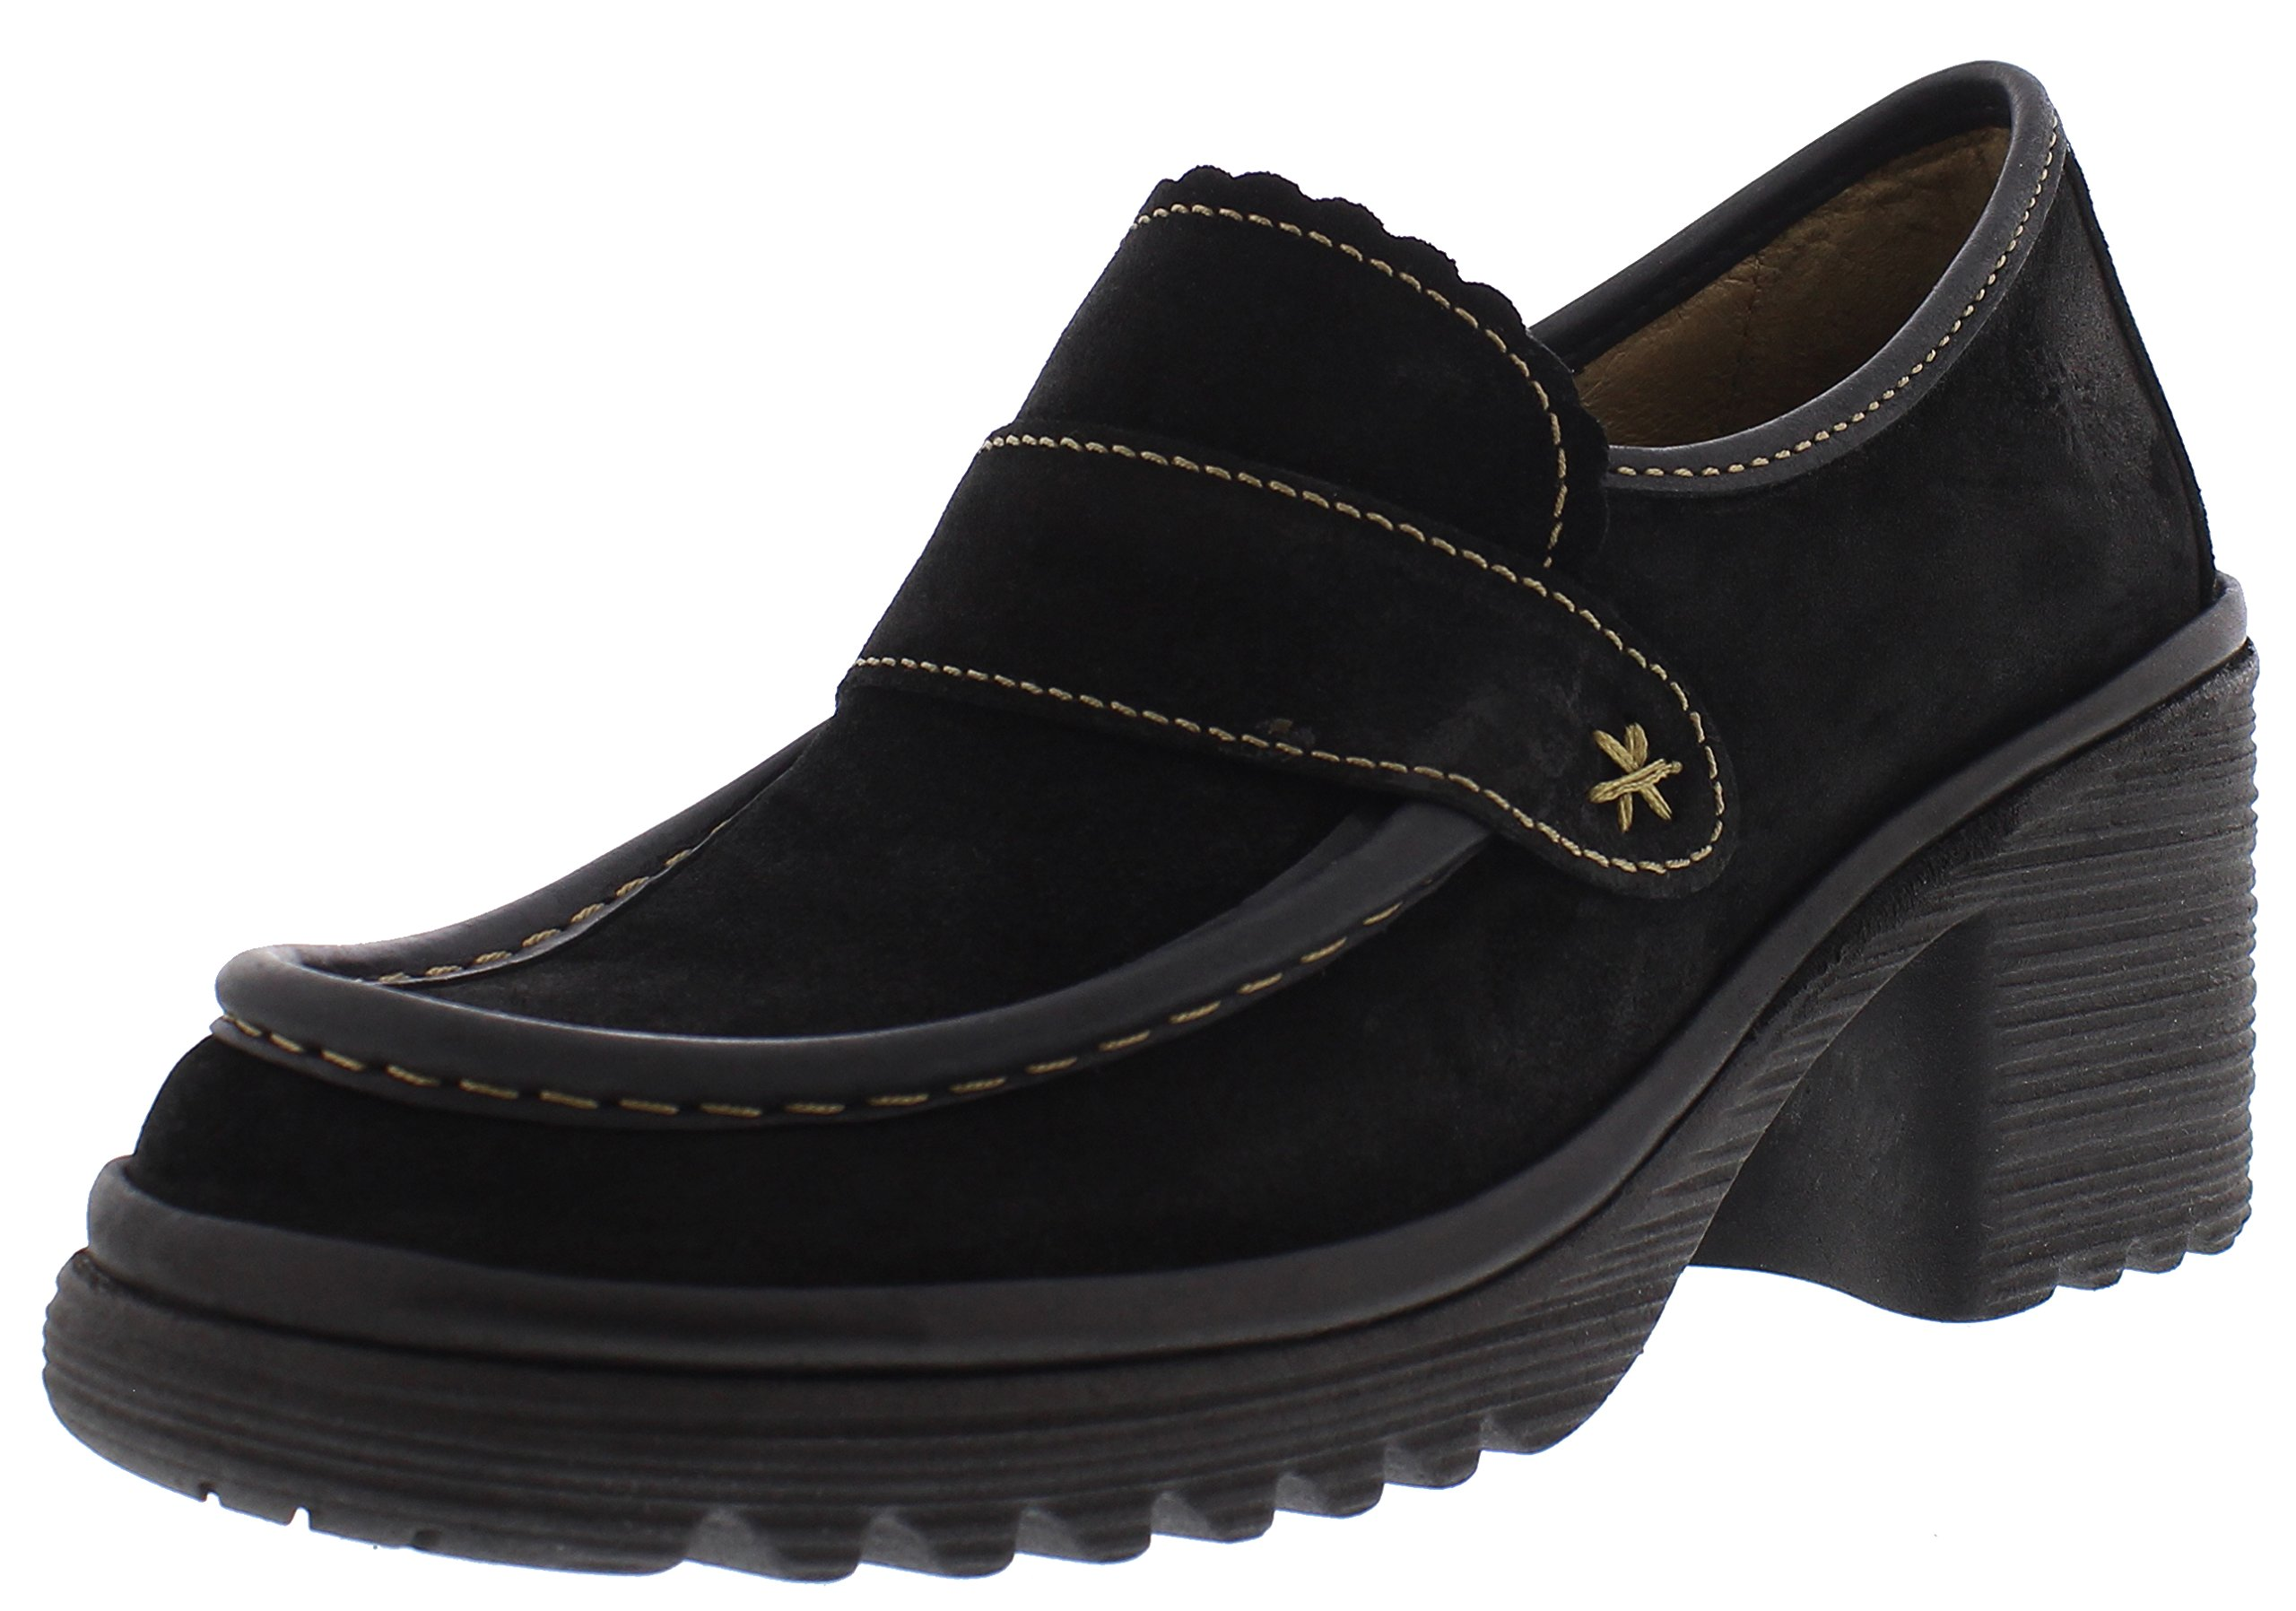 FLY London Women's WEND764FLY Penny Loafer, Black Oil Suede/Rug, 38 M EU (7.5-8 US)